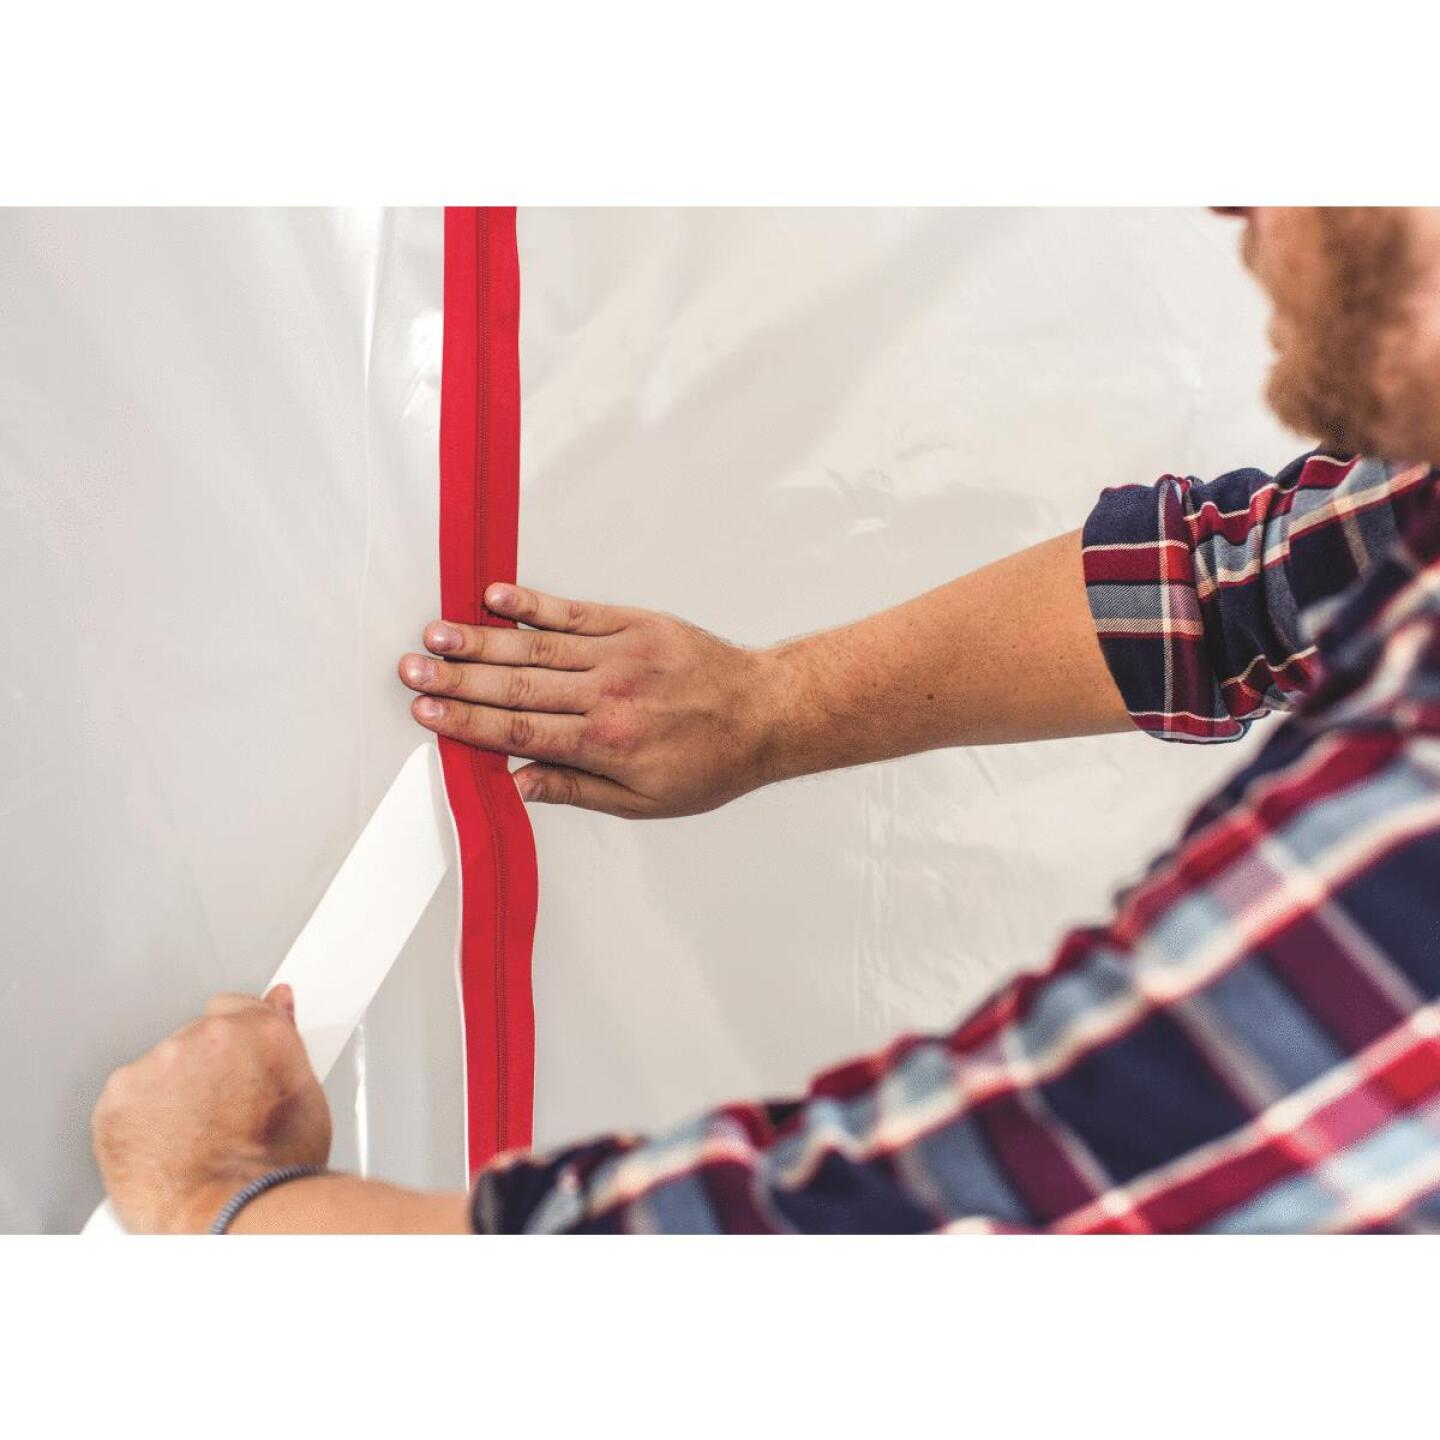 Surface Shields Zip N Close 1 1/2 In. X 7 Ft. Red Peel and Stick Plastic Barrier Zipper (2-Pack) Image 3